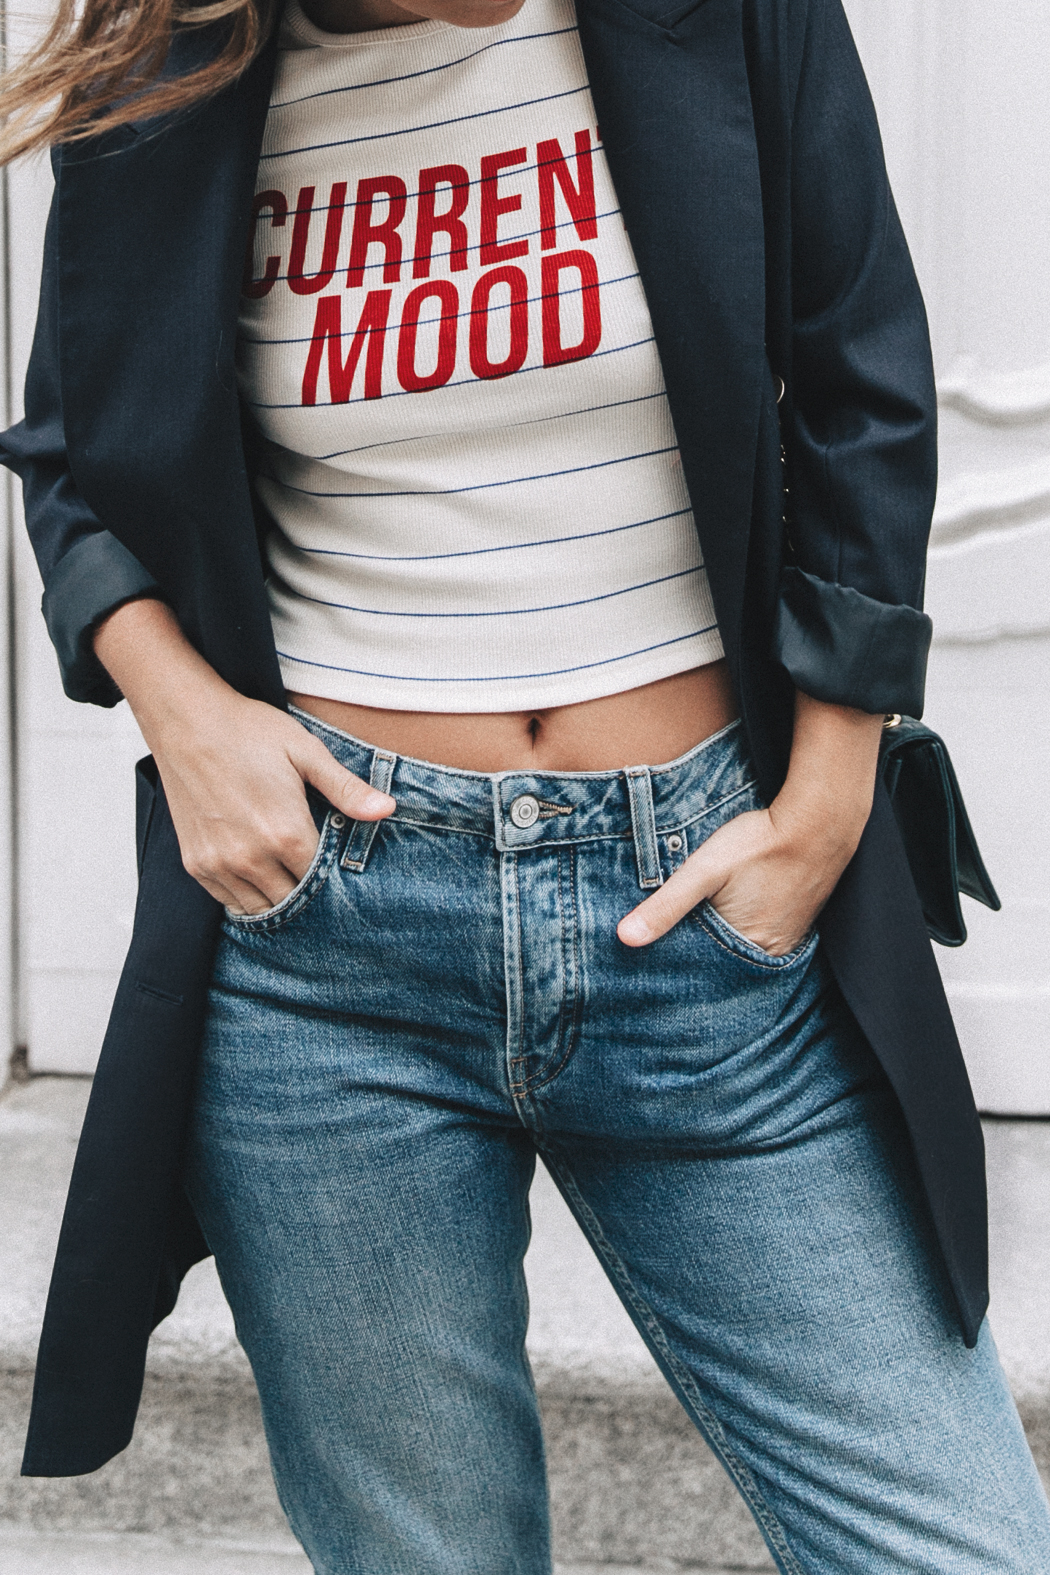 Current_Mood_Striped_Top-Denim_Jeans-Topshop-Dune_Sandals-Outfit-Street_Style-Collage_Vintage-662